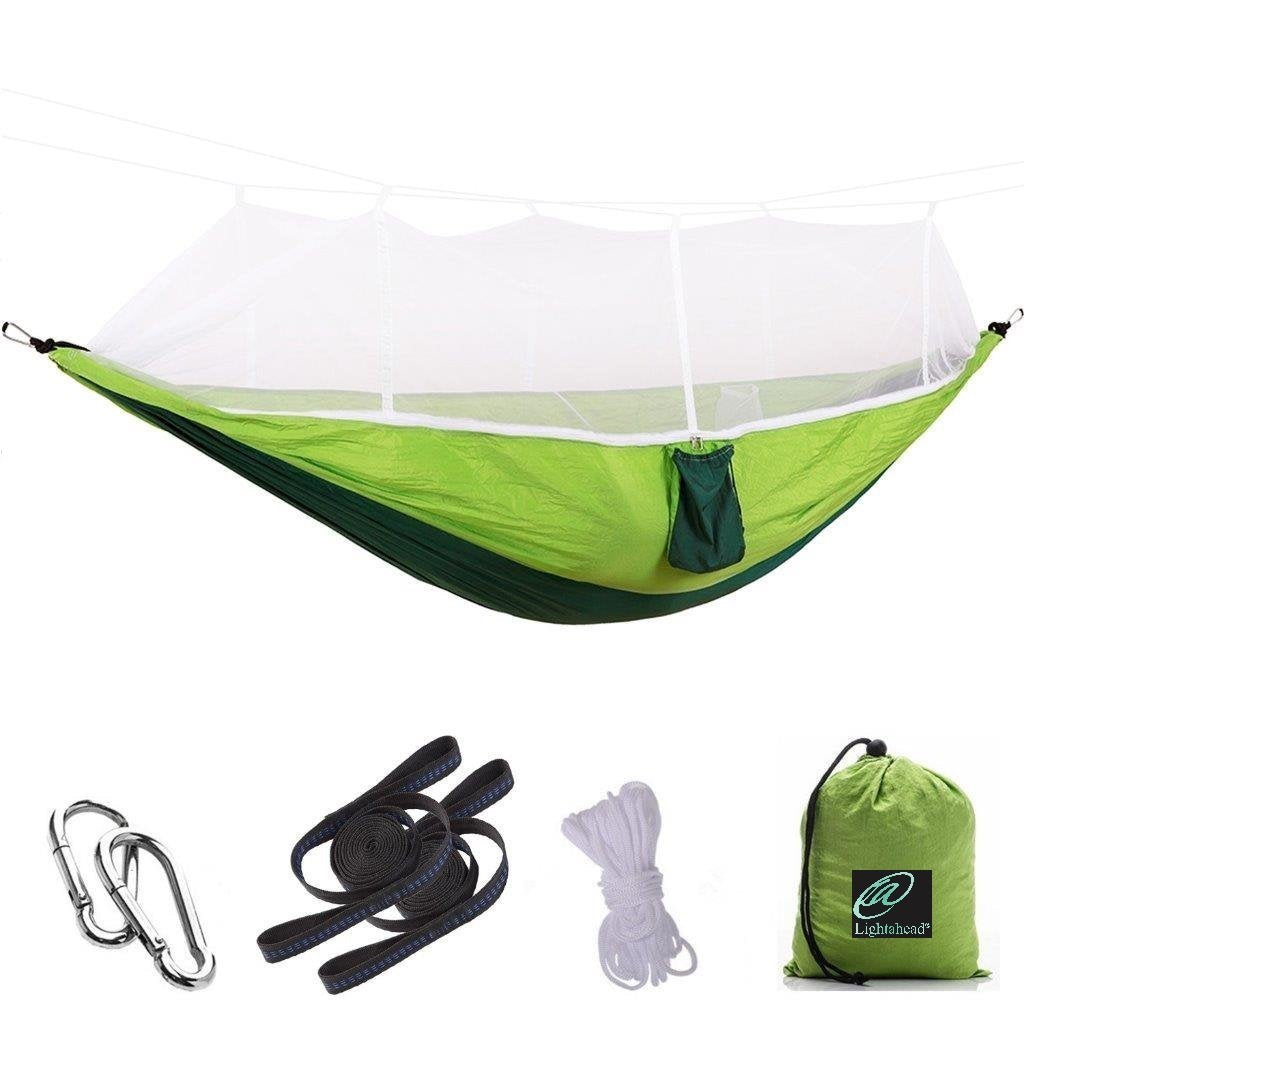 Lightahead Parachute Portable Camping Hammock with Removable Mosquito Net,Strap,Carabiner,Rope-Green